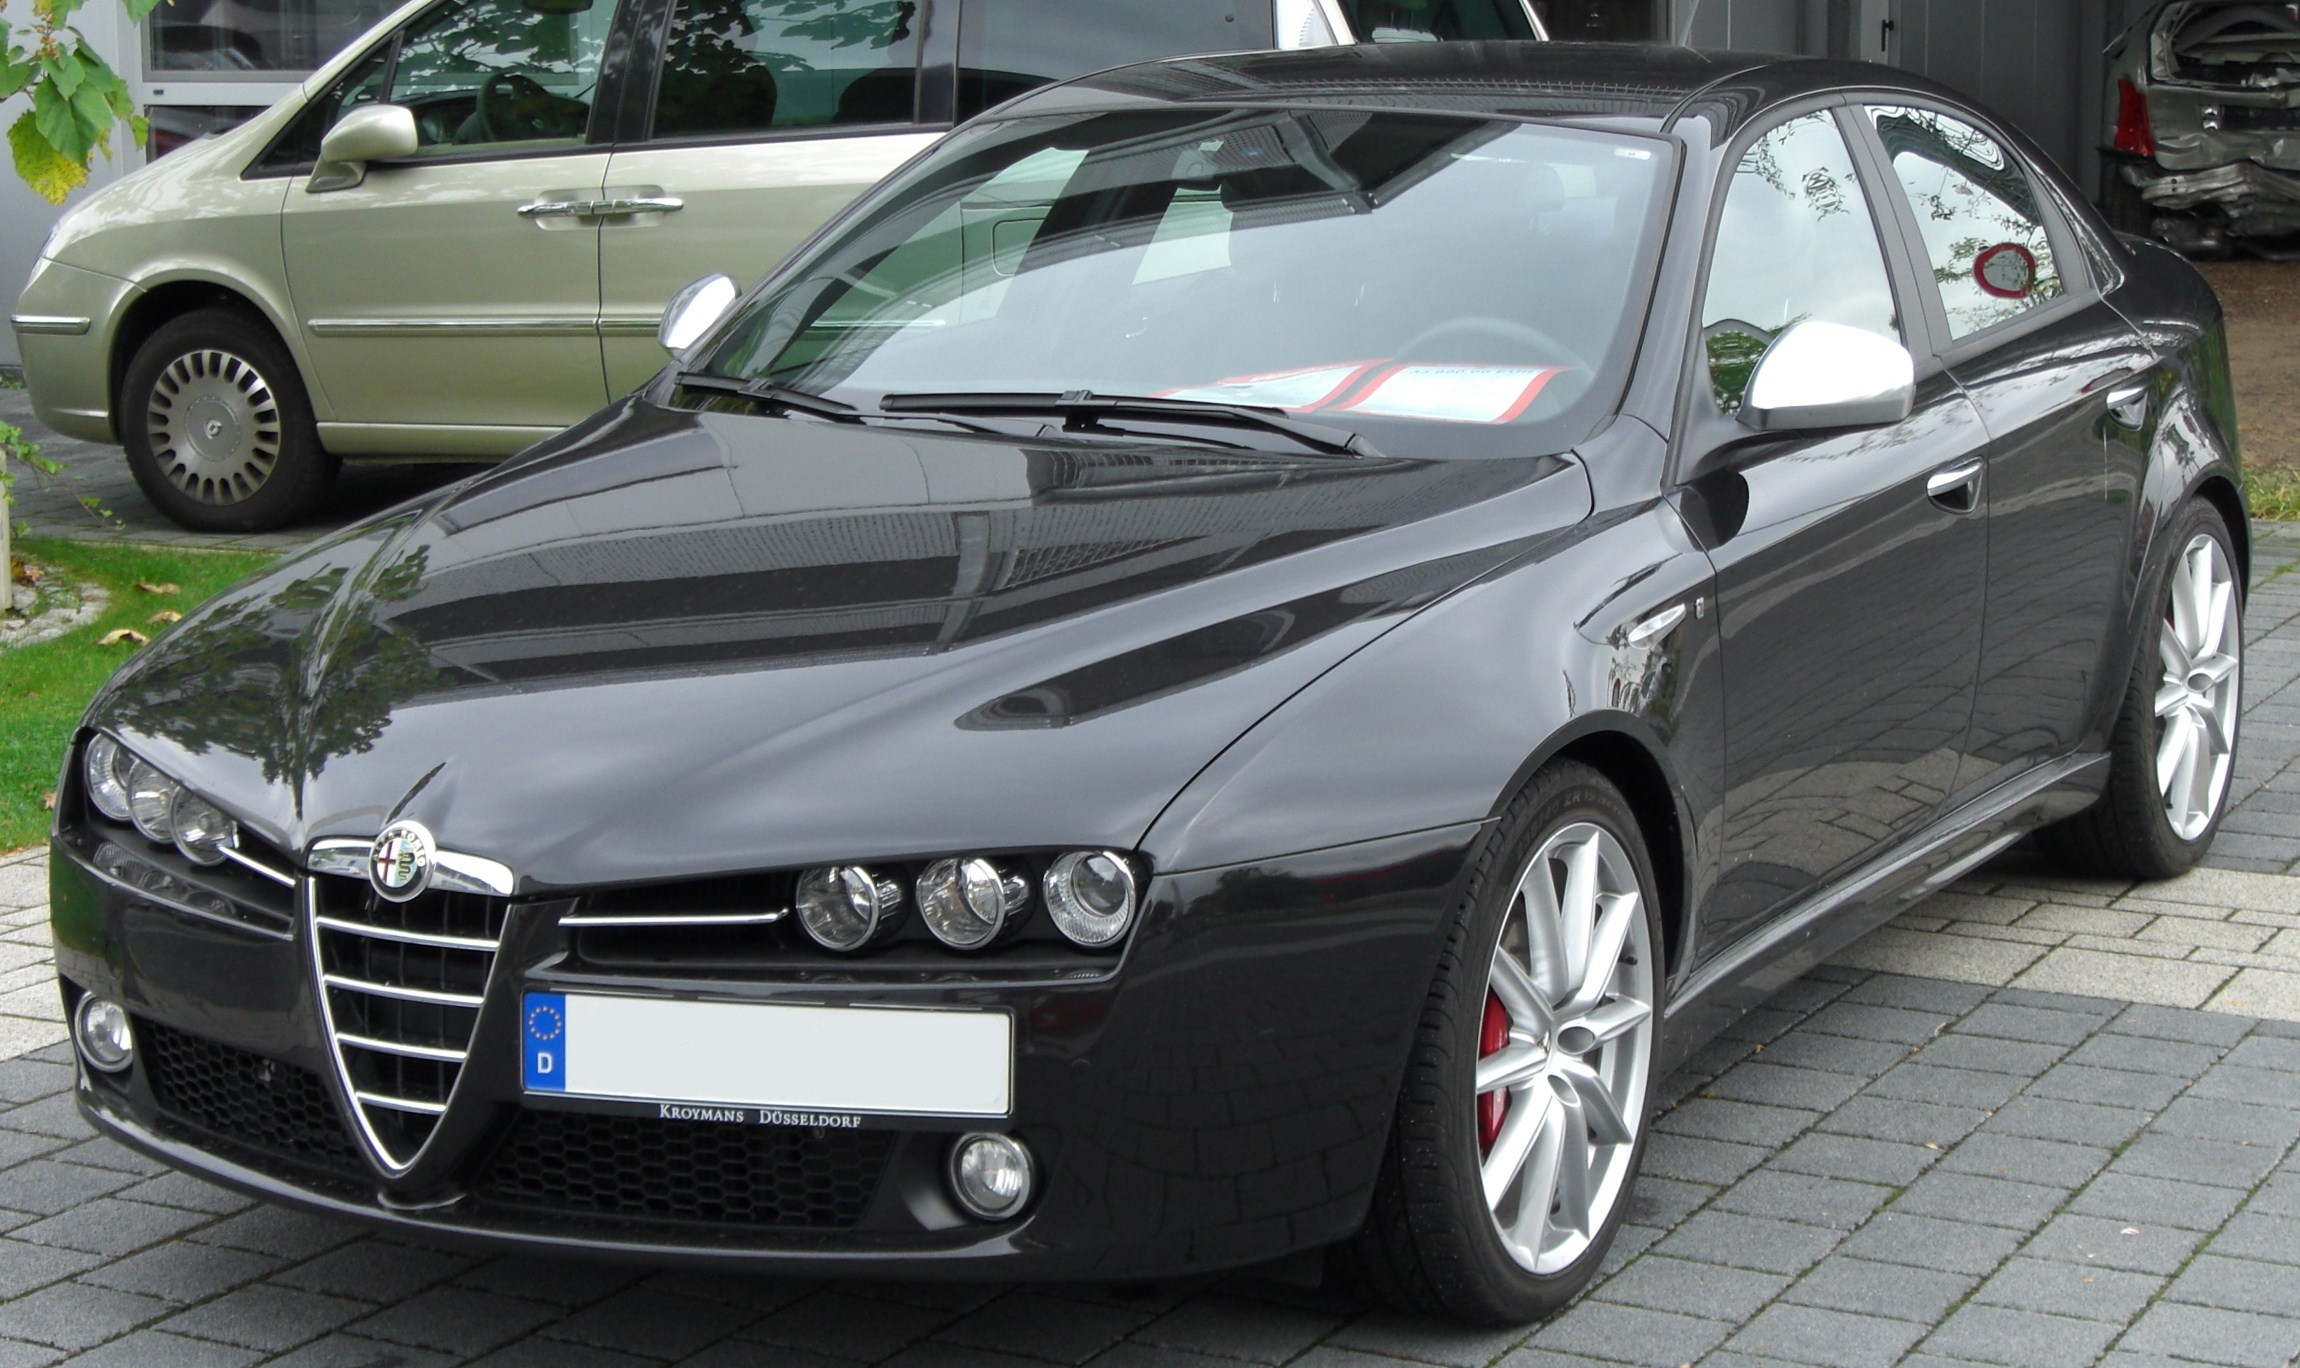 file alfa romeo 159 ti front jpg wikimedia commons. Black Bedroom Furniture Sets. Home Design Ideas